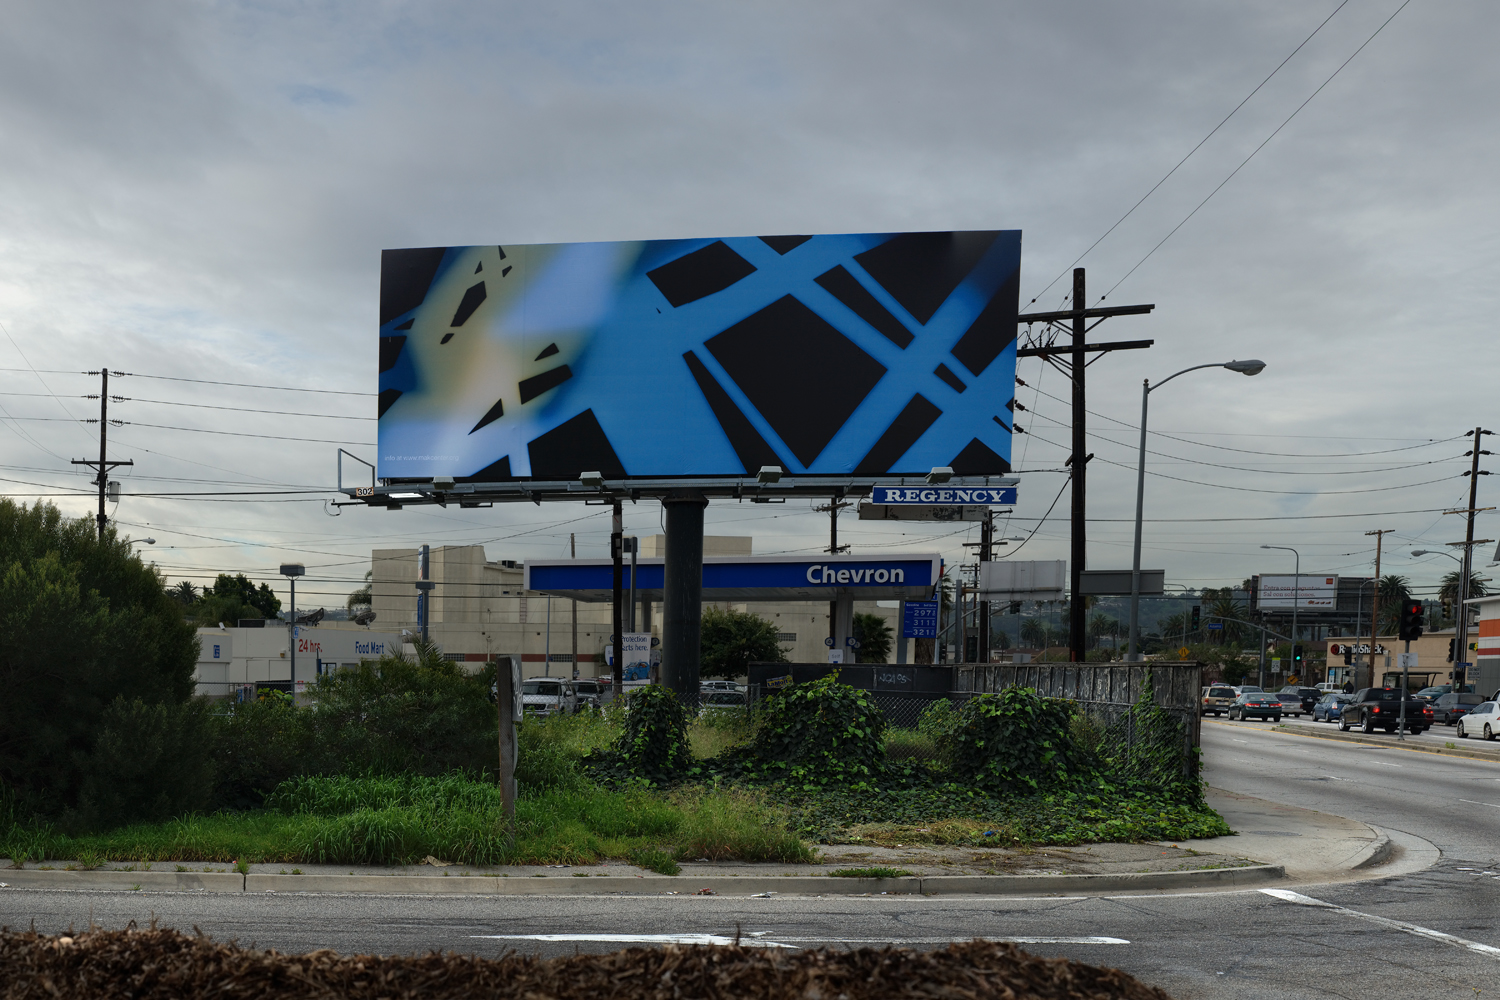 Photographer James Welling's billboard, at La Brea Avenue south of the 10, suggests a fractured grid, canted city streets, and a fraying urban fabric. Photo by Patricia Parinejad.